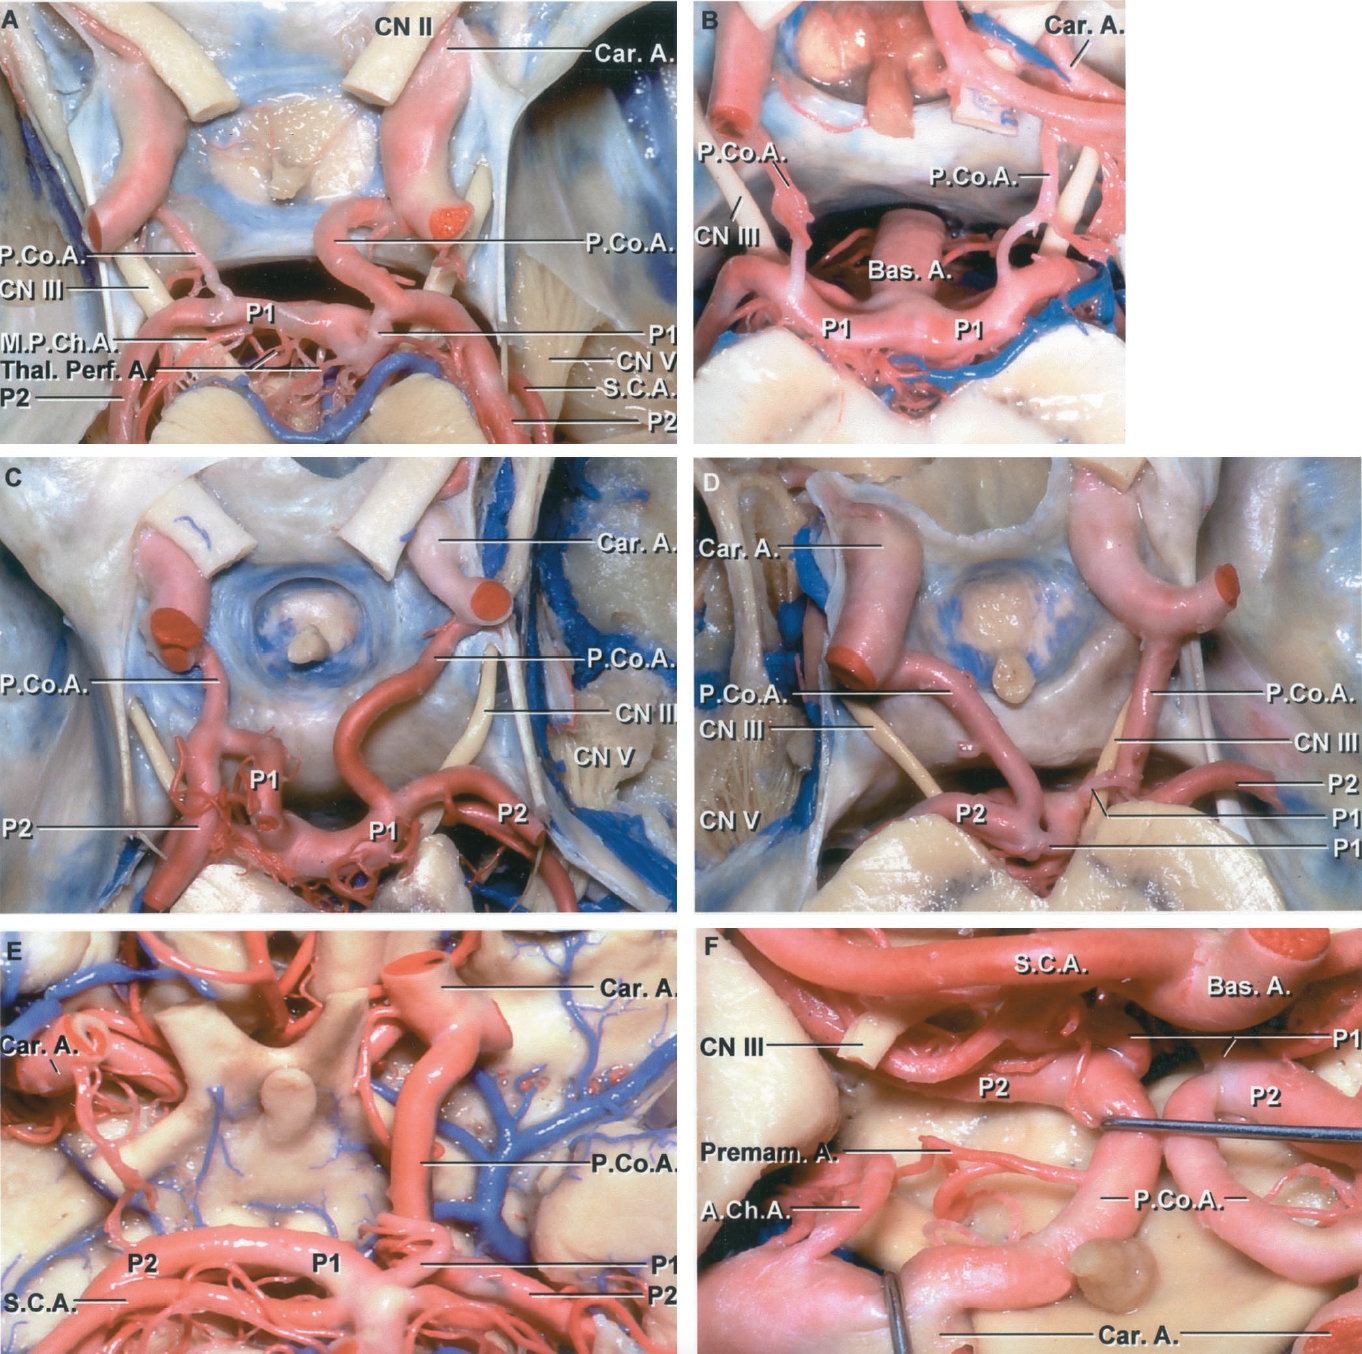 FIGURE 2.8. Variations in the posterior circle of Willis include differing lengths and diameters of the PComAs or P1s. A, superior view. The left PComA is hypoplastic and the right is larger than its corresponding P1. The left PComA is straight and short and the right is long and convex medially. The right P2 segment is a direct continuation of the PComA. An MPChA courses medial to the left P2. Thalamoperforating branches arise at the basilar bifurcation. B, both P1s arise predominantly from the basilar artery. The hypoplastic PComAs course above and medial to the oculomotor nerves. C, the right PComA and P1 are of approximately equal size, and the junction of the PComA and the P2 is sharply angulated. The left P1 is directed anterior before joining the junction of the P2 and the PComA. The right PComA is much longer than the left. D, the right P1 arises predominantly from the PComA. The right P1 segment is small and short, being only long enough to reach above the oculomotor nerve. The left PComA and P1 are of approximately equal size, but the left P1 is short. The junction of the PComAs and the P2s are sharply angulated on both sides. E, inferior view. The left P1 is hypoplastic and the left P2 arises mainly from the PComA. The right PCA arises predominantly from the basilar artery. F, large tortuous PComAs almost touch in the midline. The P2s arise predominantly from the large PComAs, which are larger than the P1 segments. Premamillary perforating branches of the PComA arise on both sides. A., artery; A.Ch.A., anterior choroidal artery; Bas., basilar; Car., carotid; CN, cranial nerve; M.P.Ch.A., medial posterior choroidal artery; P.Co.A., posterior communicating artery; Premam., premamillary; S.C.A., superior cerebellar artery; Thal. Perf., thalamoperforating.